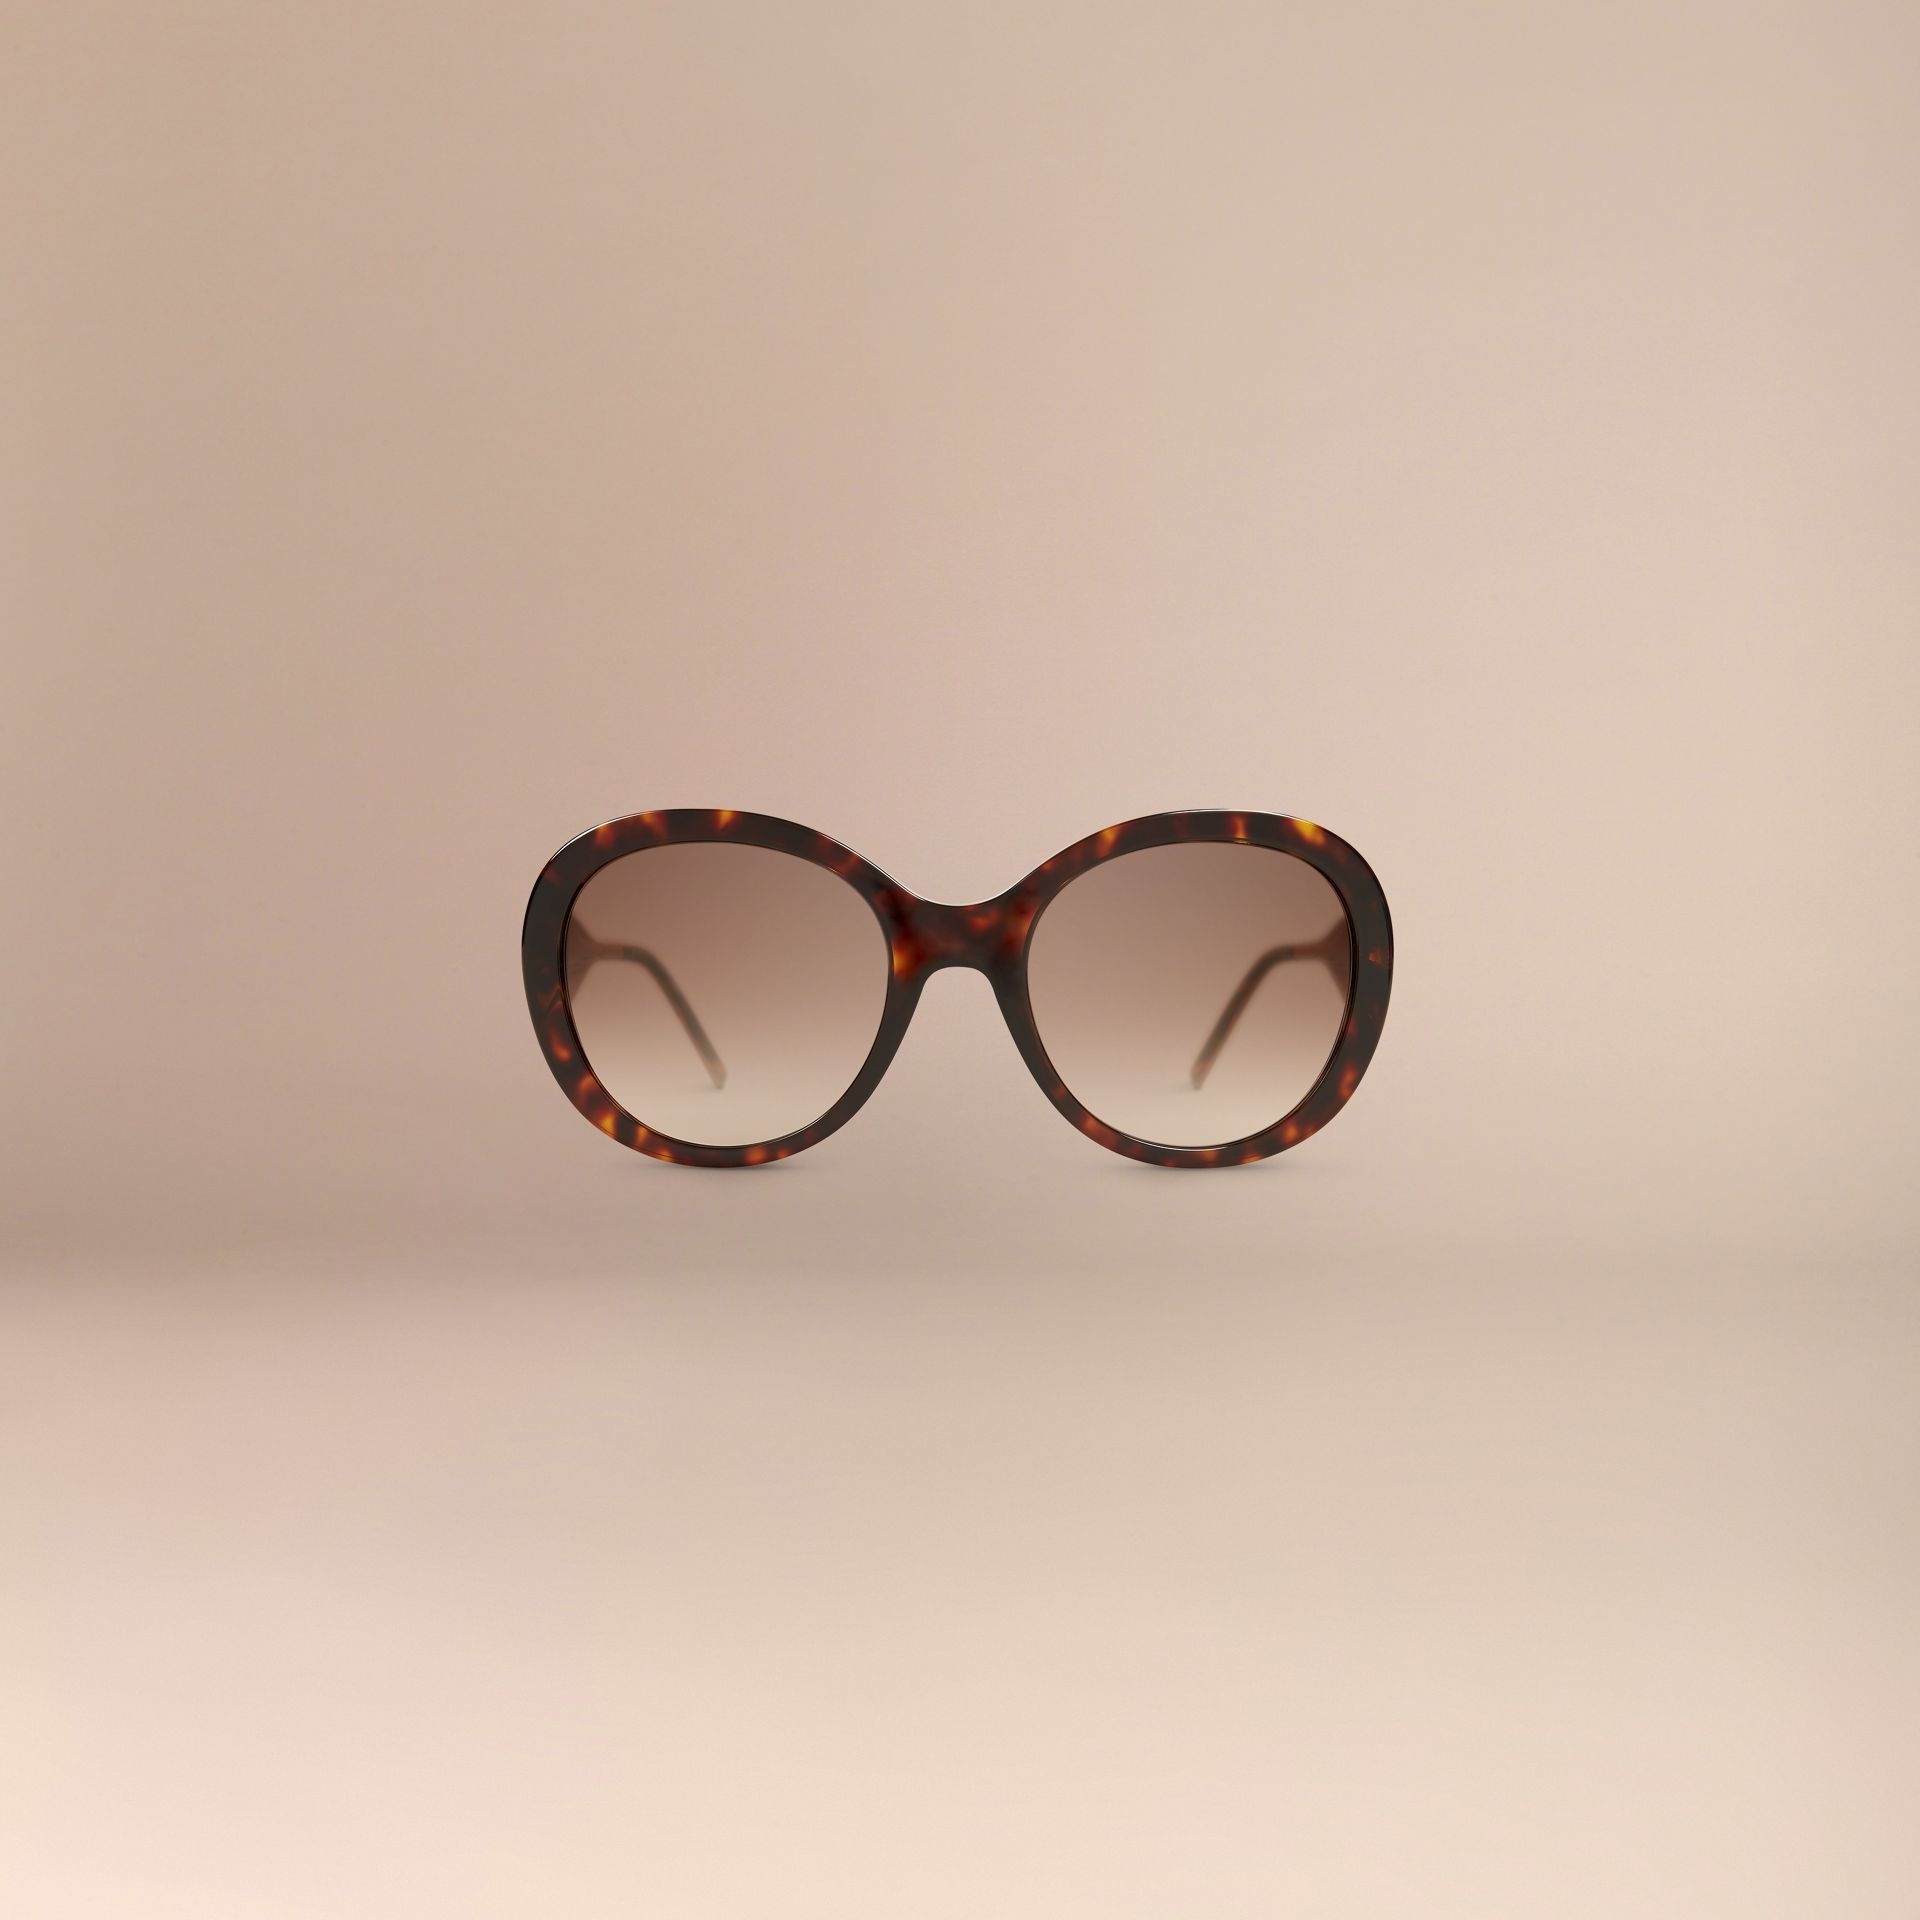 Oversize Round Frame Sunglasses in Ebony - Women | Burberry - gallery image 3